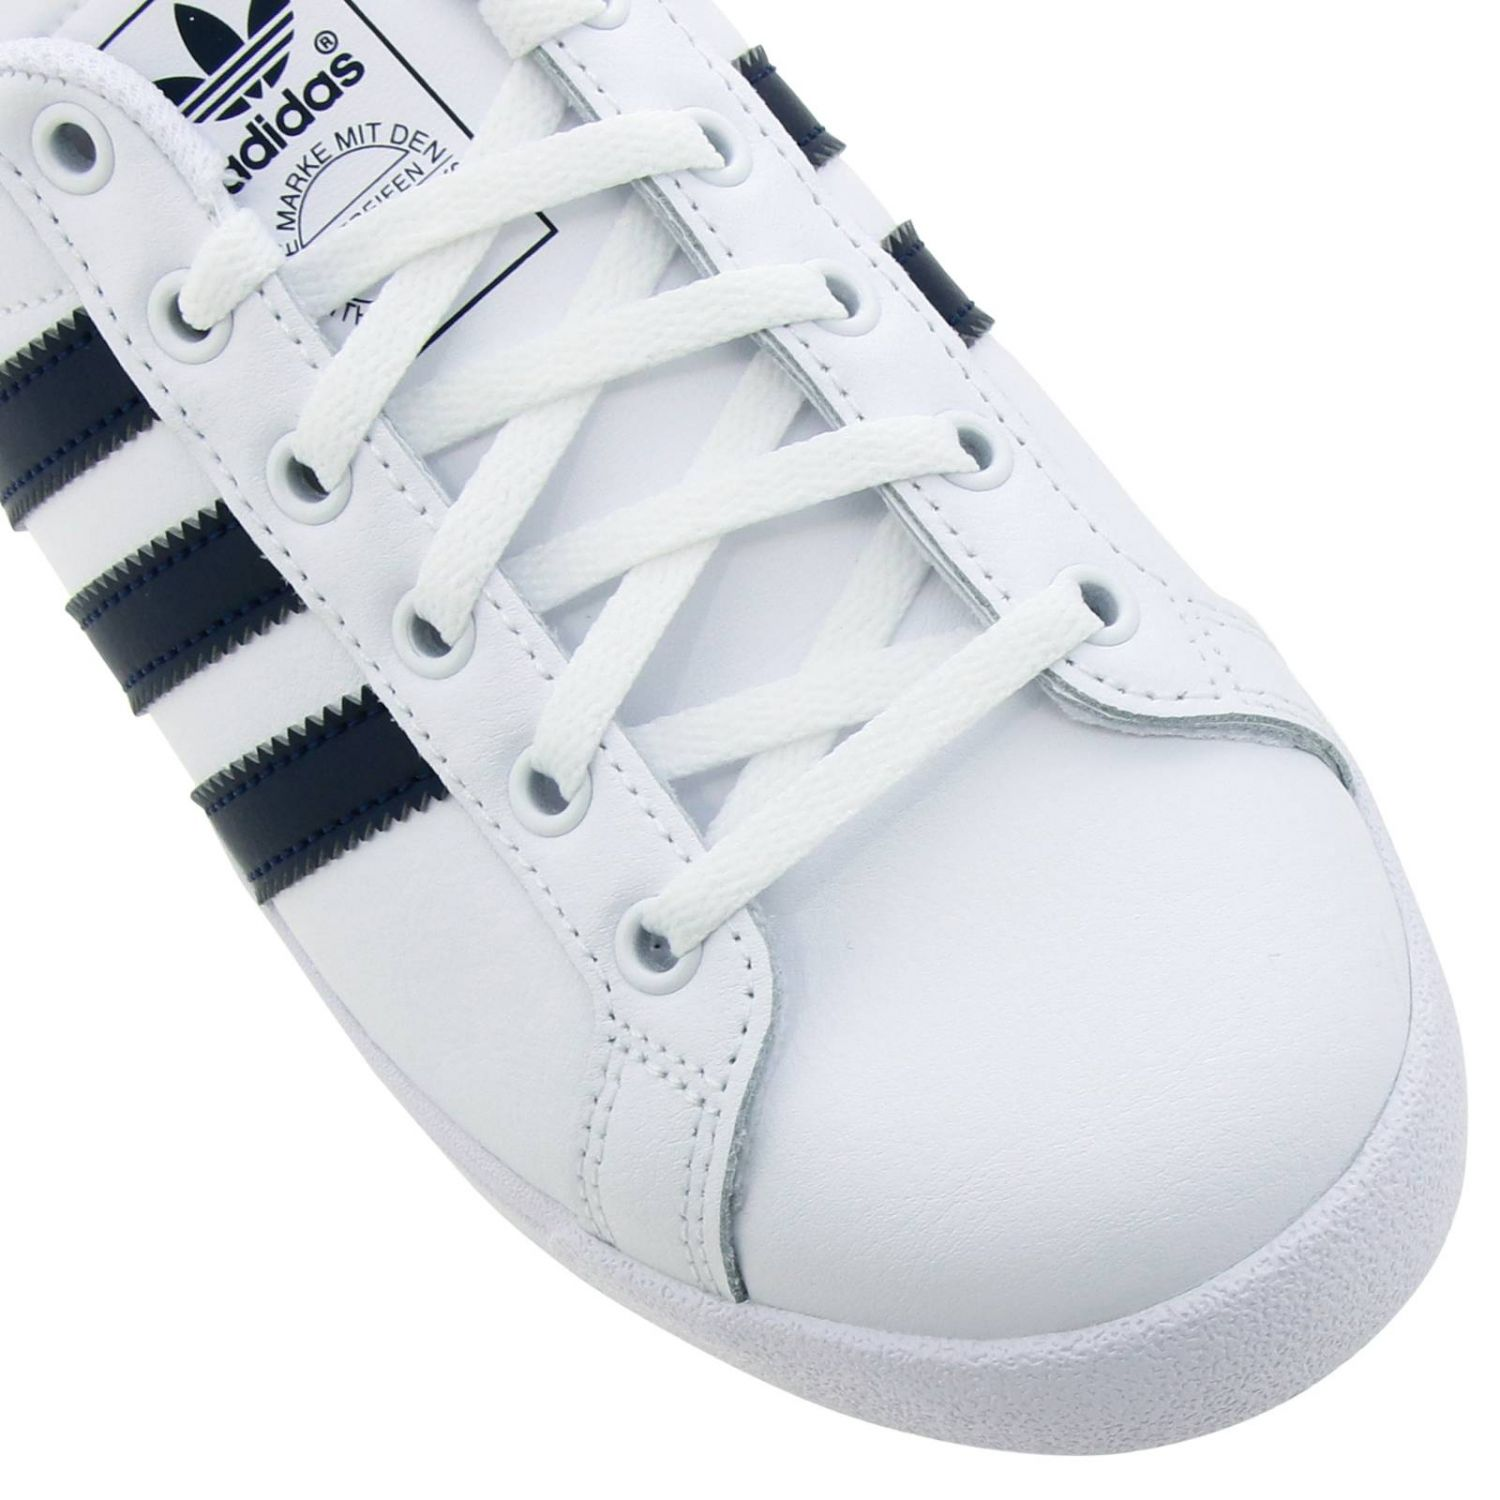 Coast star J Adidas Originals sneakers in leather with contrasting bands white 3